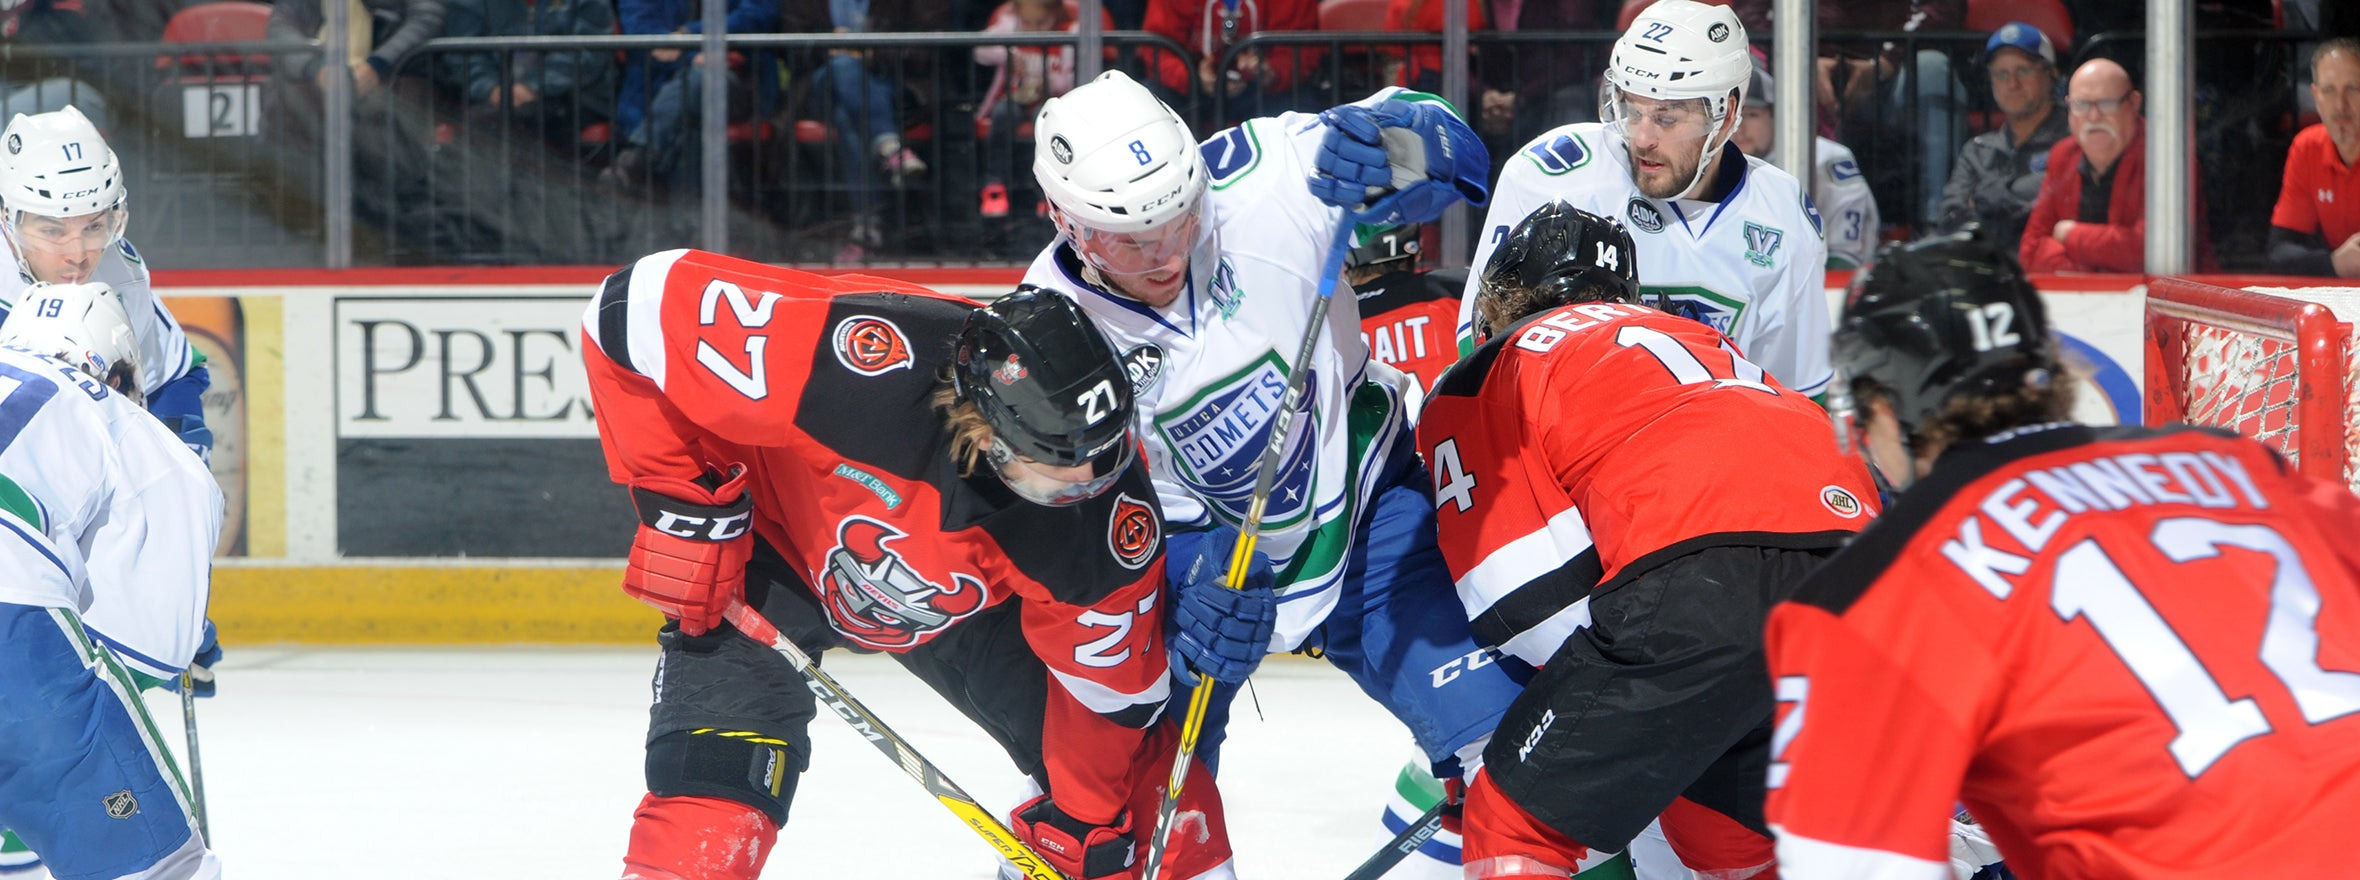 COMETS ROUTED BY DEVILS